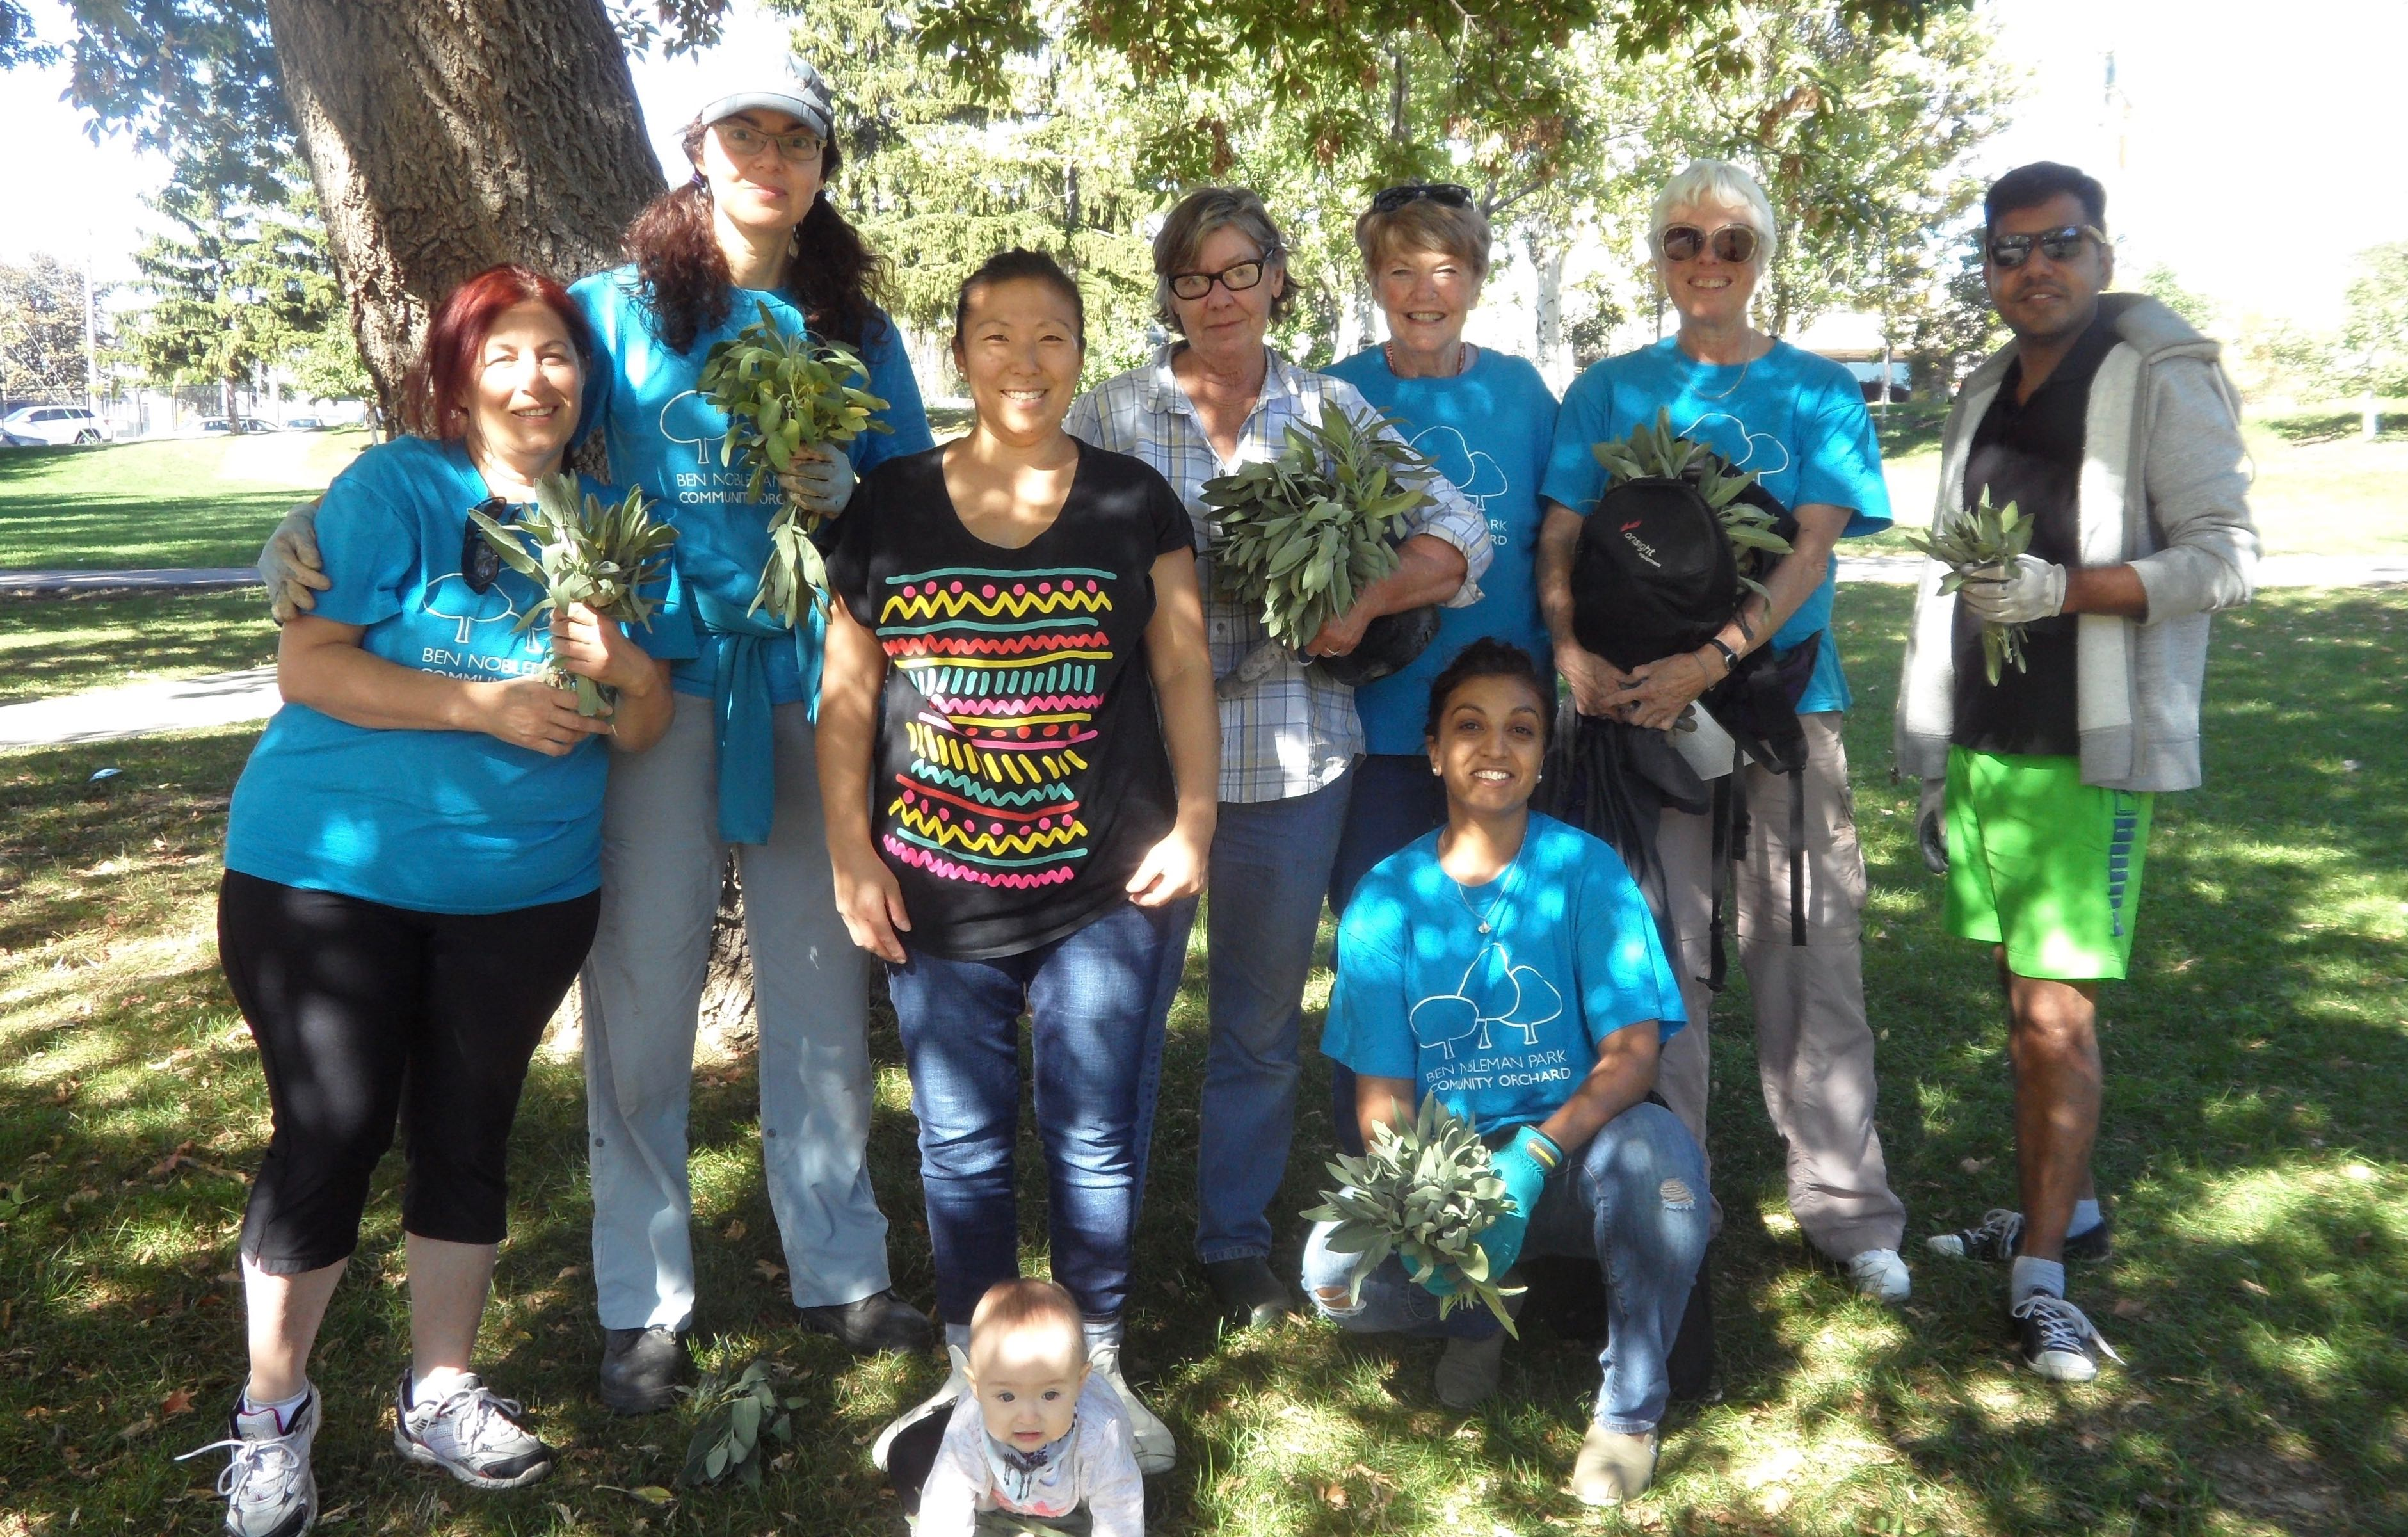 Volunteers of the Ben Nobleman Park Community Orchard show off their bouquets of sage!